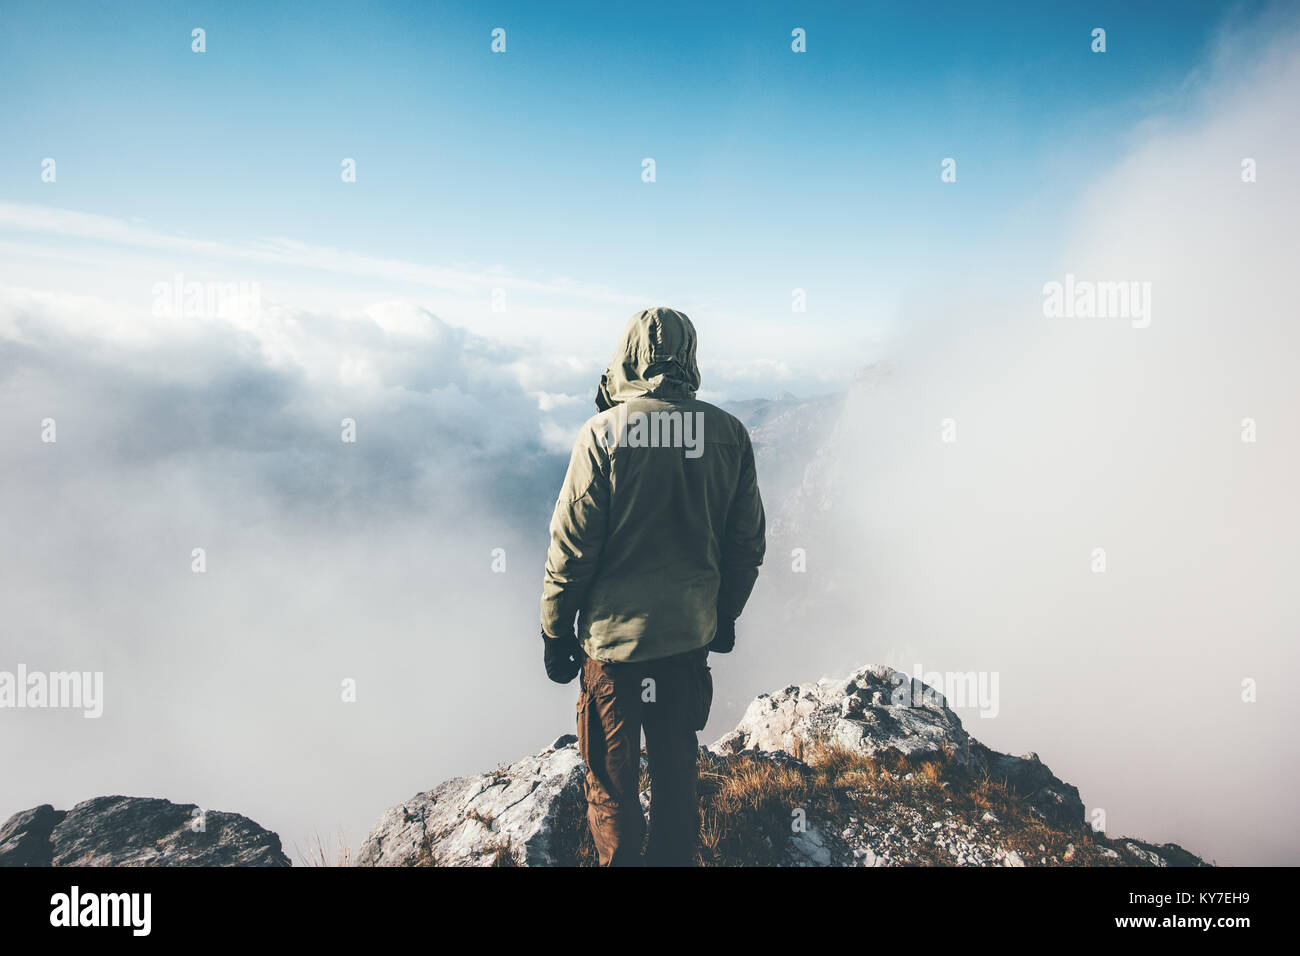 Traveler Man on mountain summit alone enjoying aerial view over clouds Travel Lifestyle success concept adventure - Stock Image